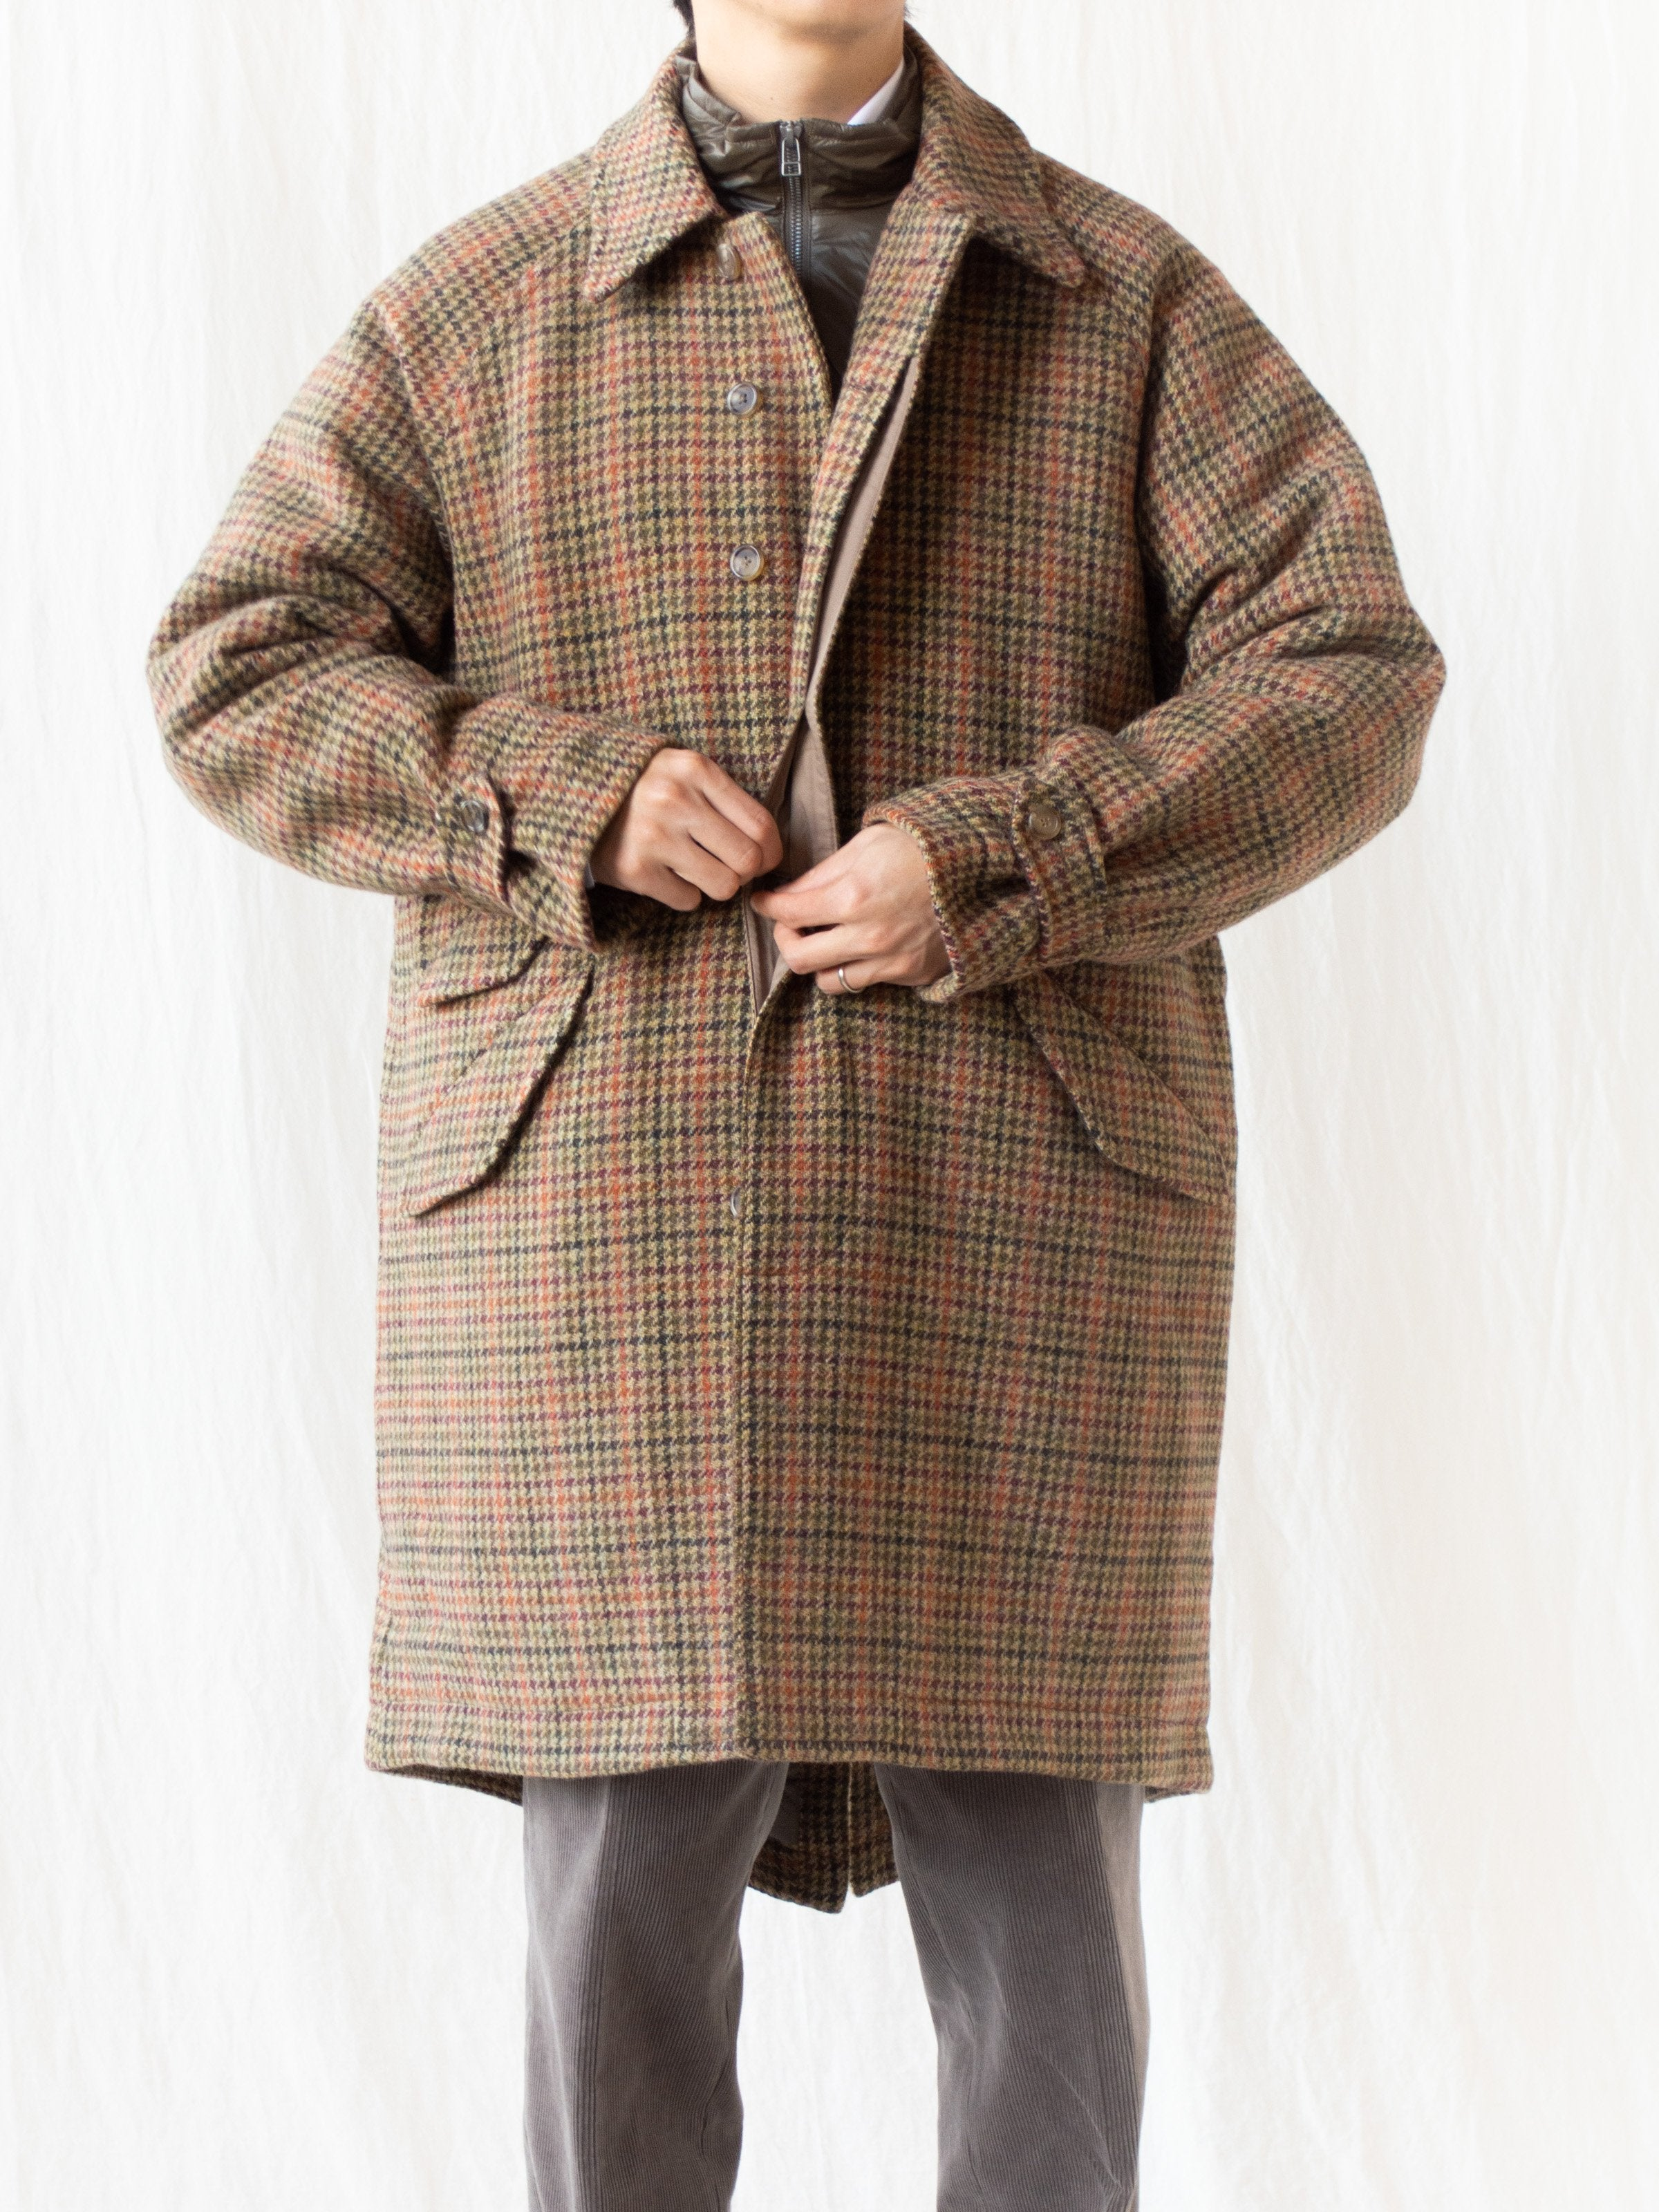 Namu Shop - Eastlogue Field Coat - Multi Gunclub Check